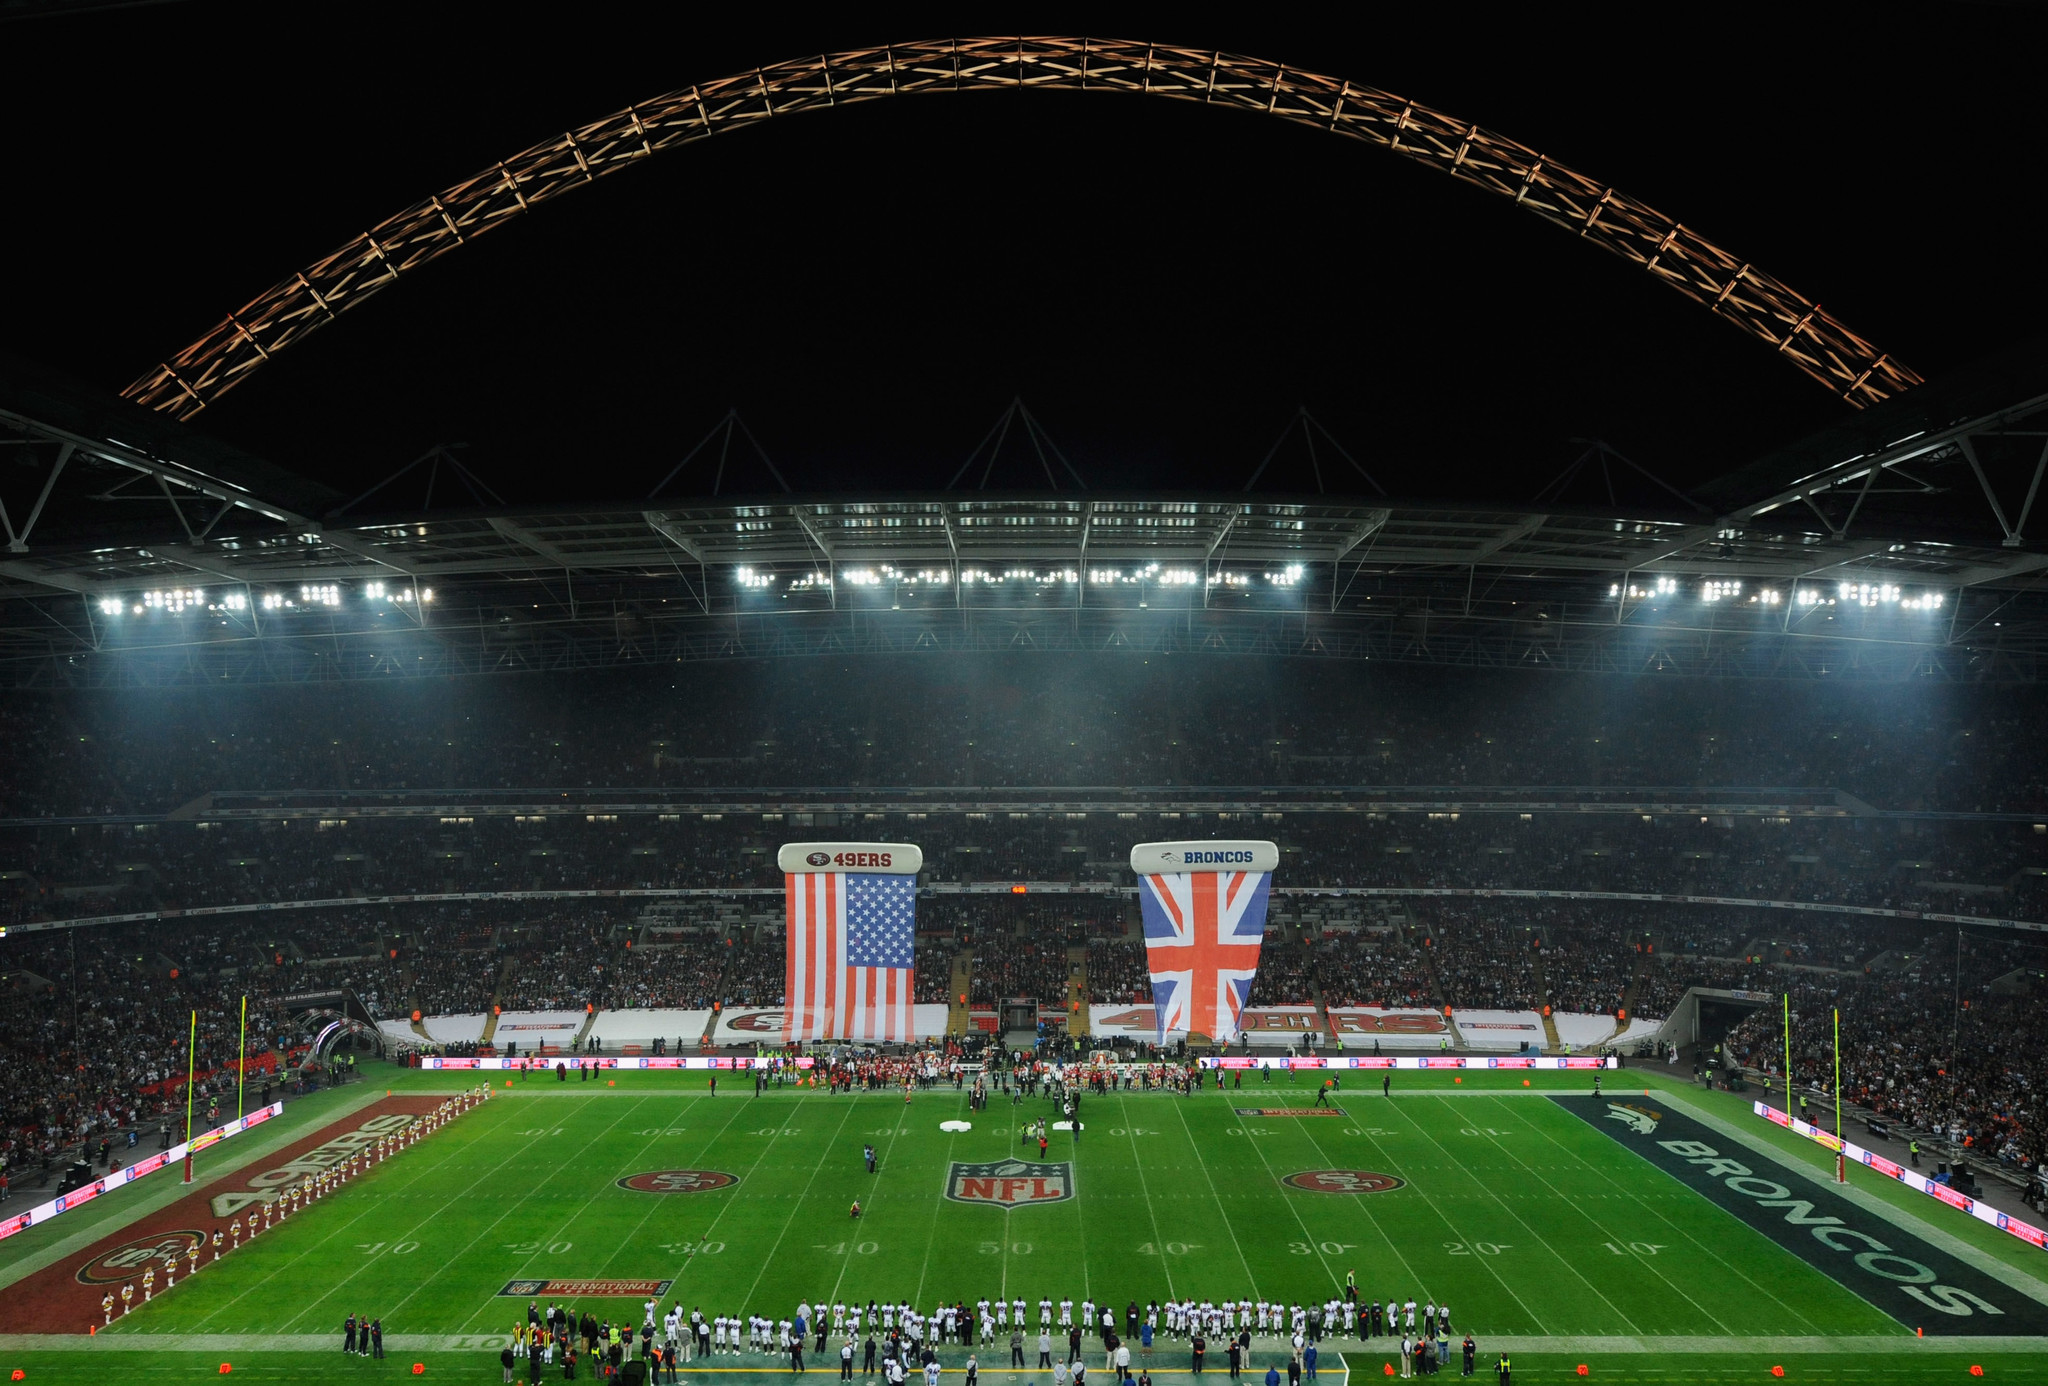 NFL games in London sell out every time and still lose money  Chicago Tribune